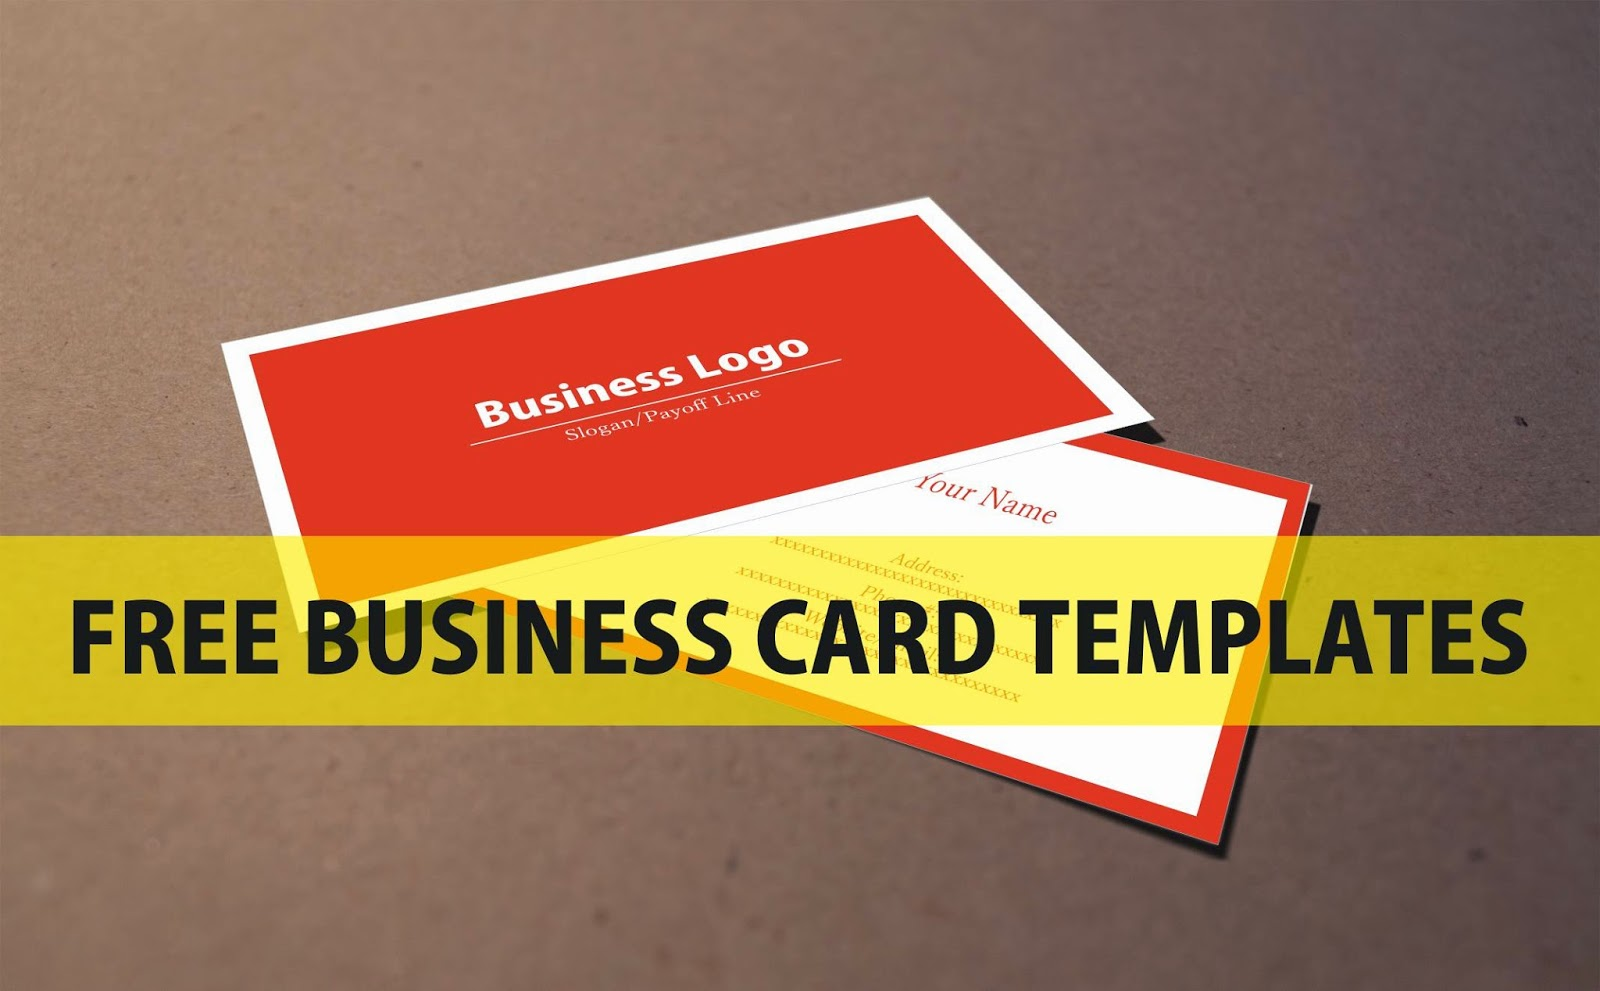 Free business card template download coreldraw file a graphic free business card template download coreldraw file fbccfo